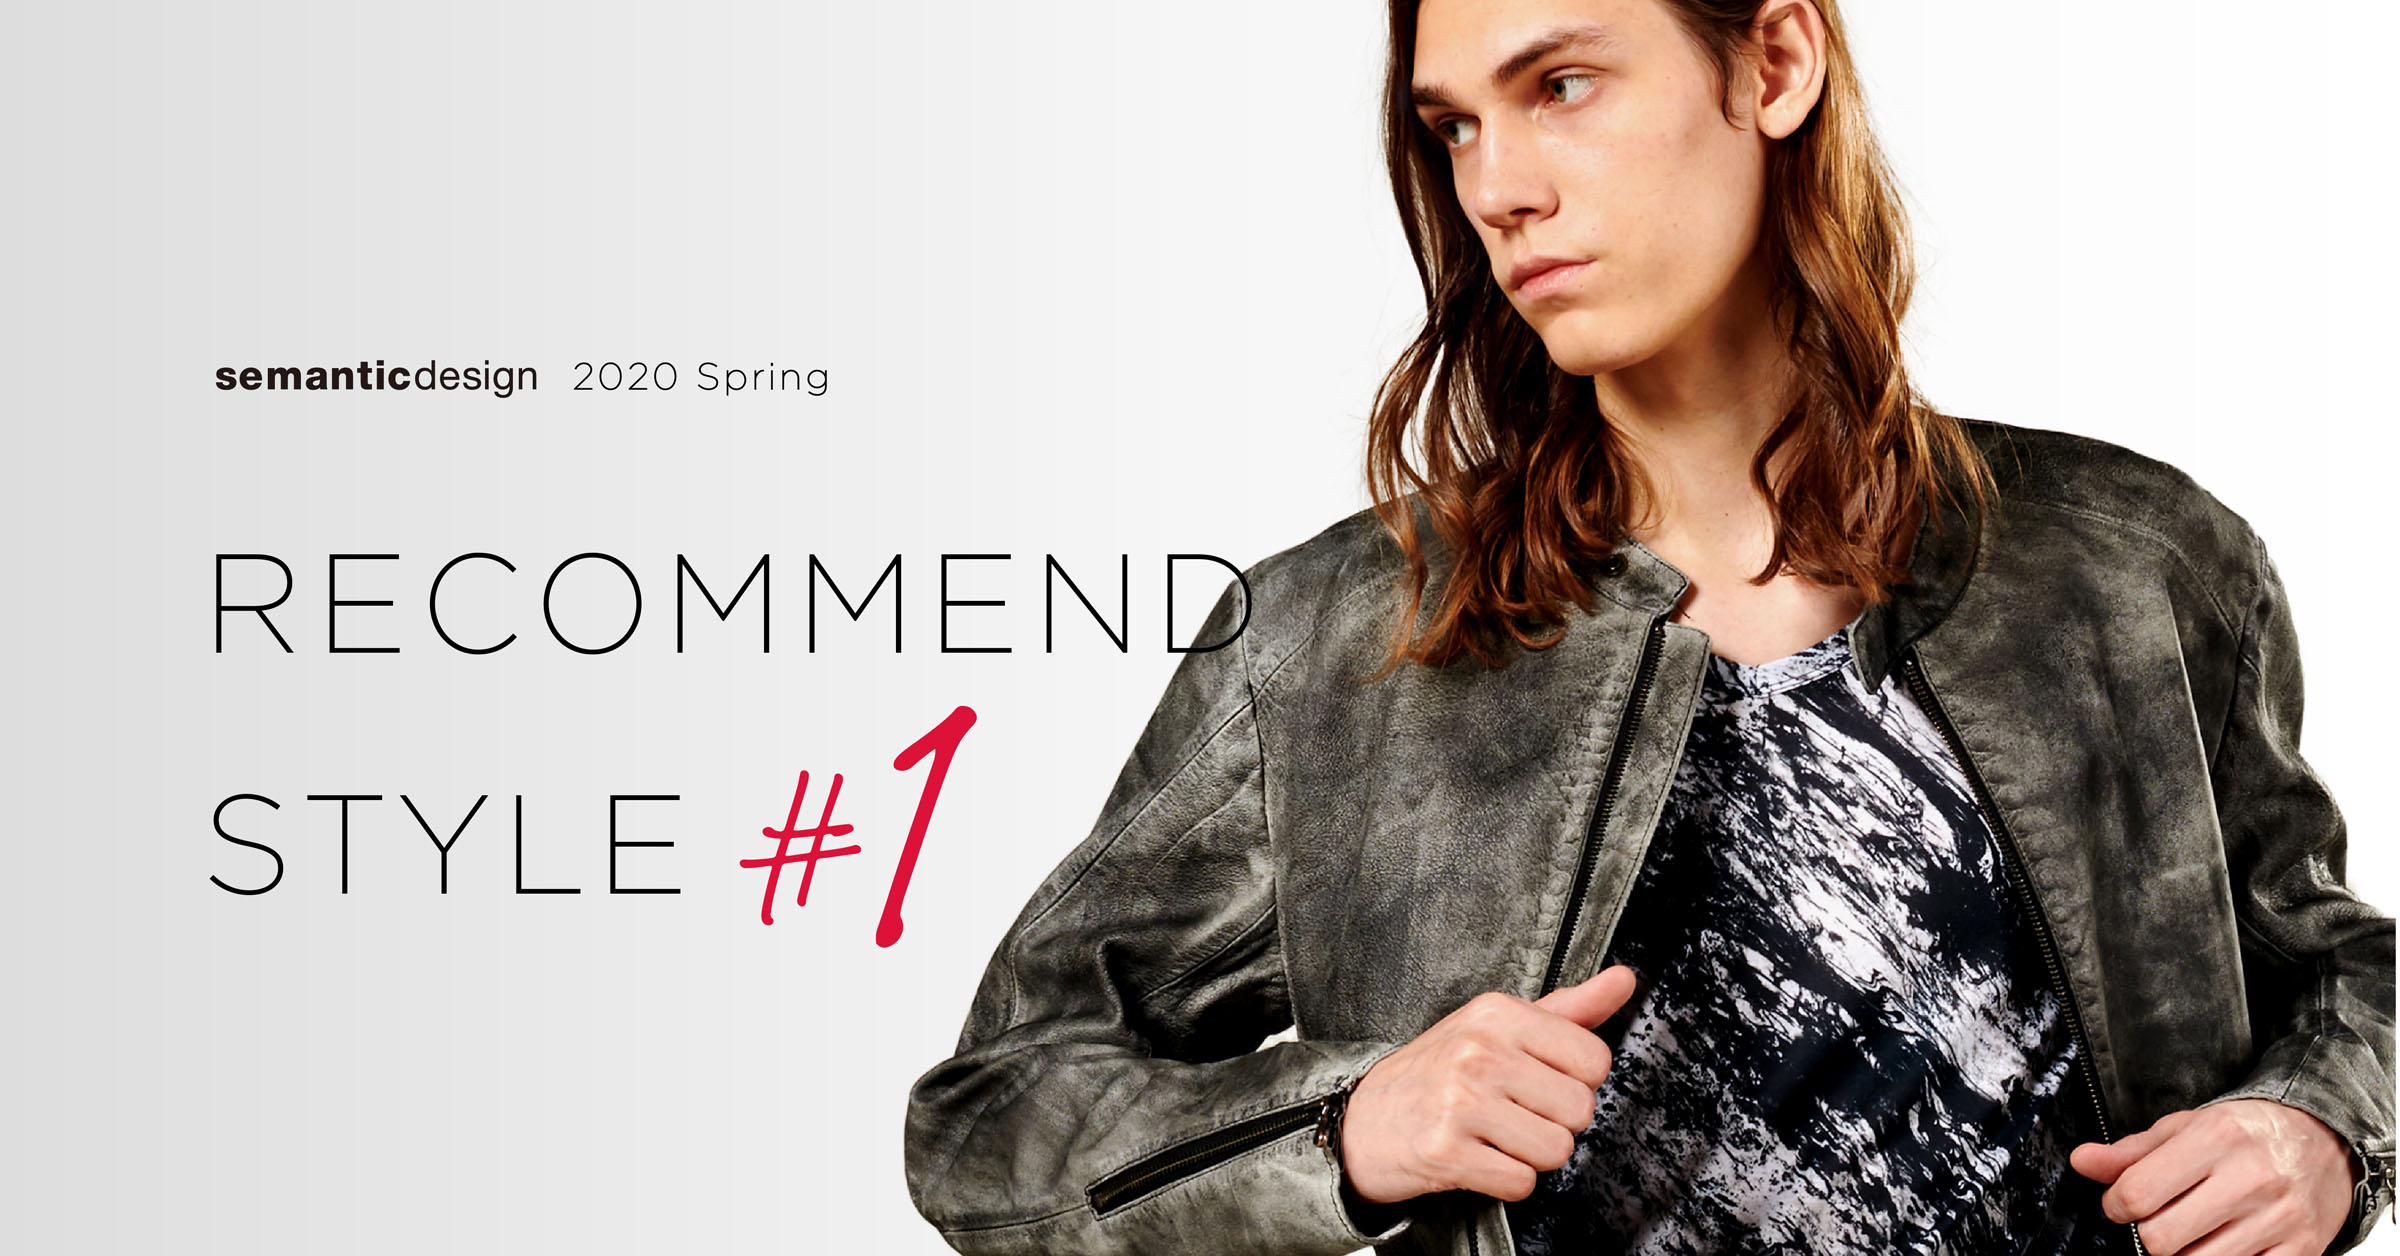 2020 Spring RECOMMEND STYLE ♯1